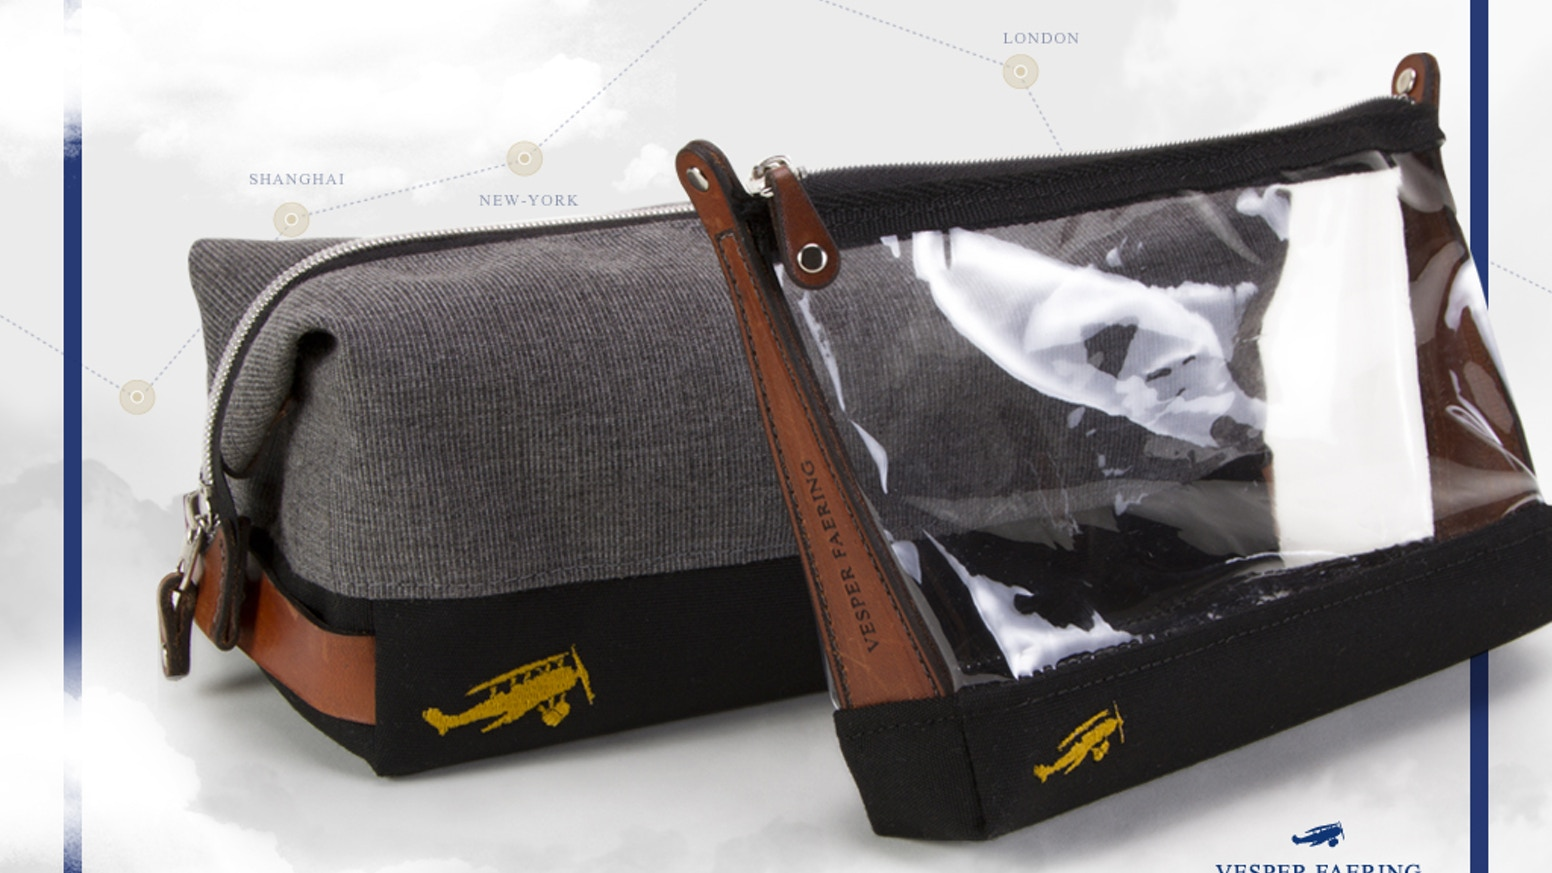 e95a3c5402a0 The Sidecar: A toiletry bag for the discerning traveller by Vesper ...